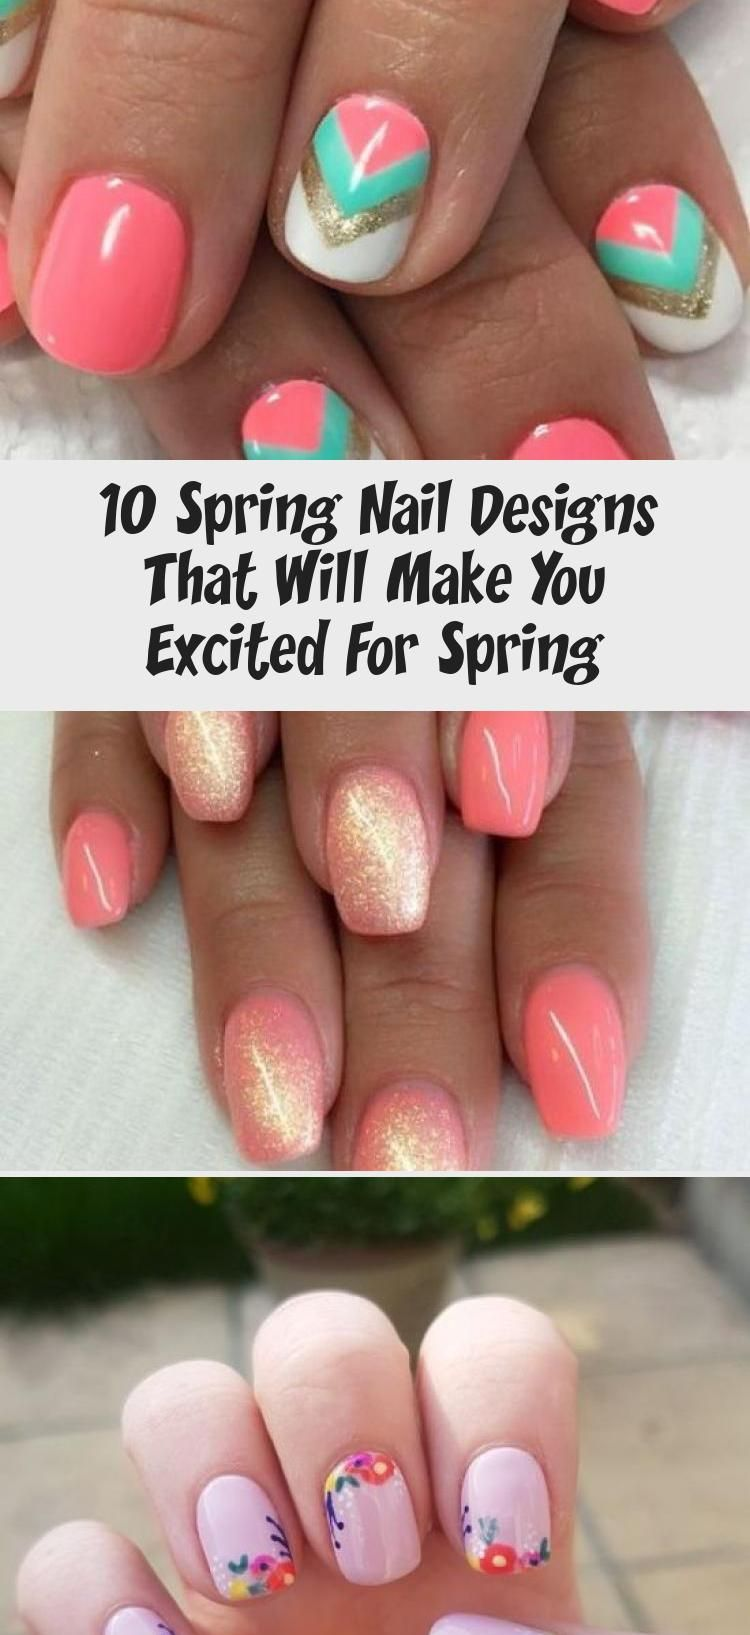 10 Spring Nail Designs That Will Make You Excited For Spring – Nail Desing